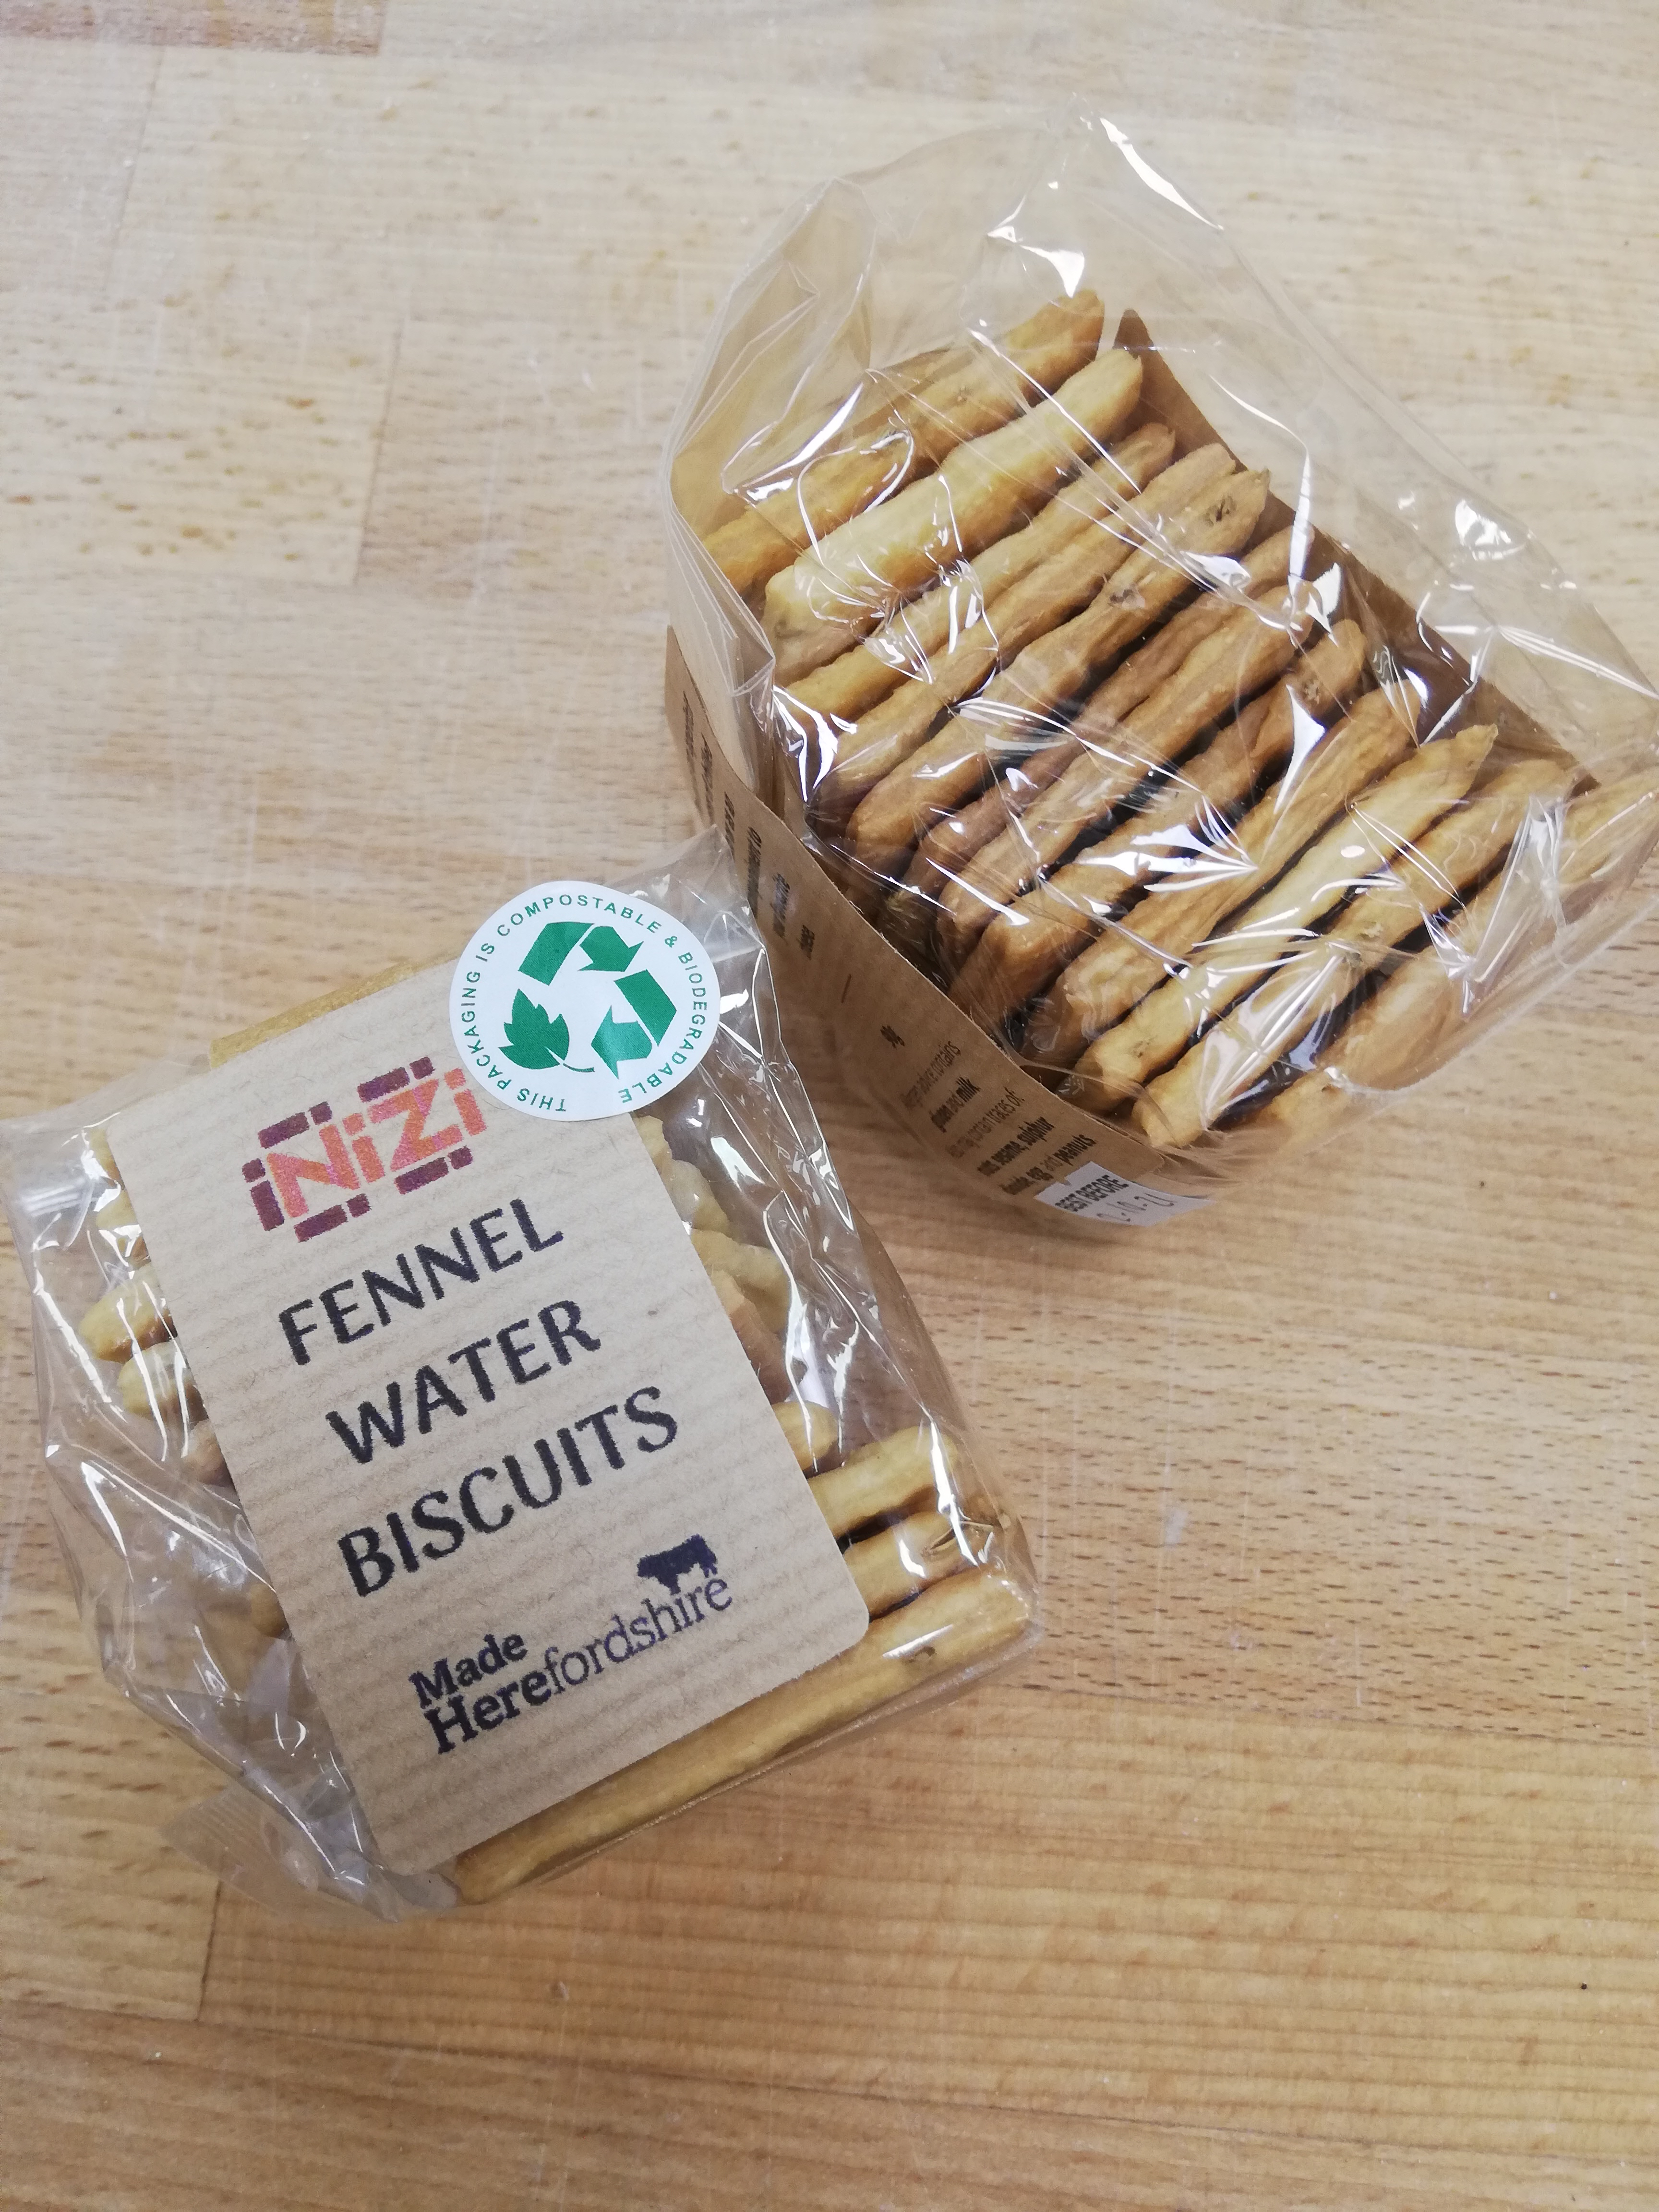 (WED) Fennel Water Biscuits